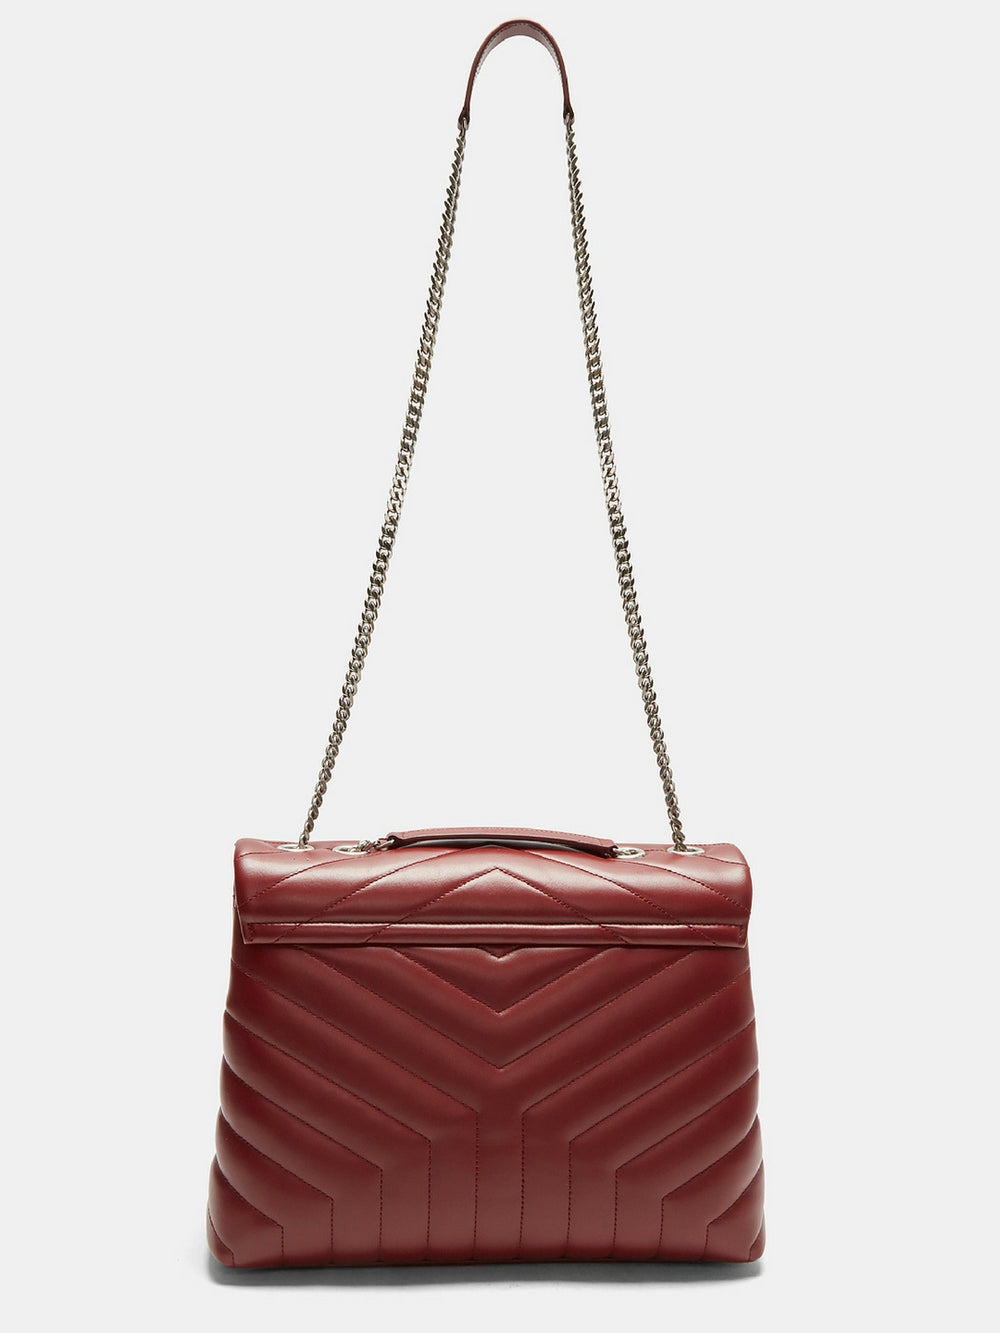 saint-laurent-medium-loulou-monogram-matelassé-handbag-burgundy